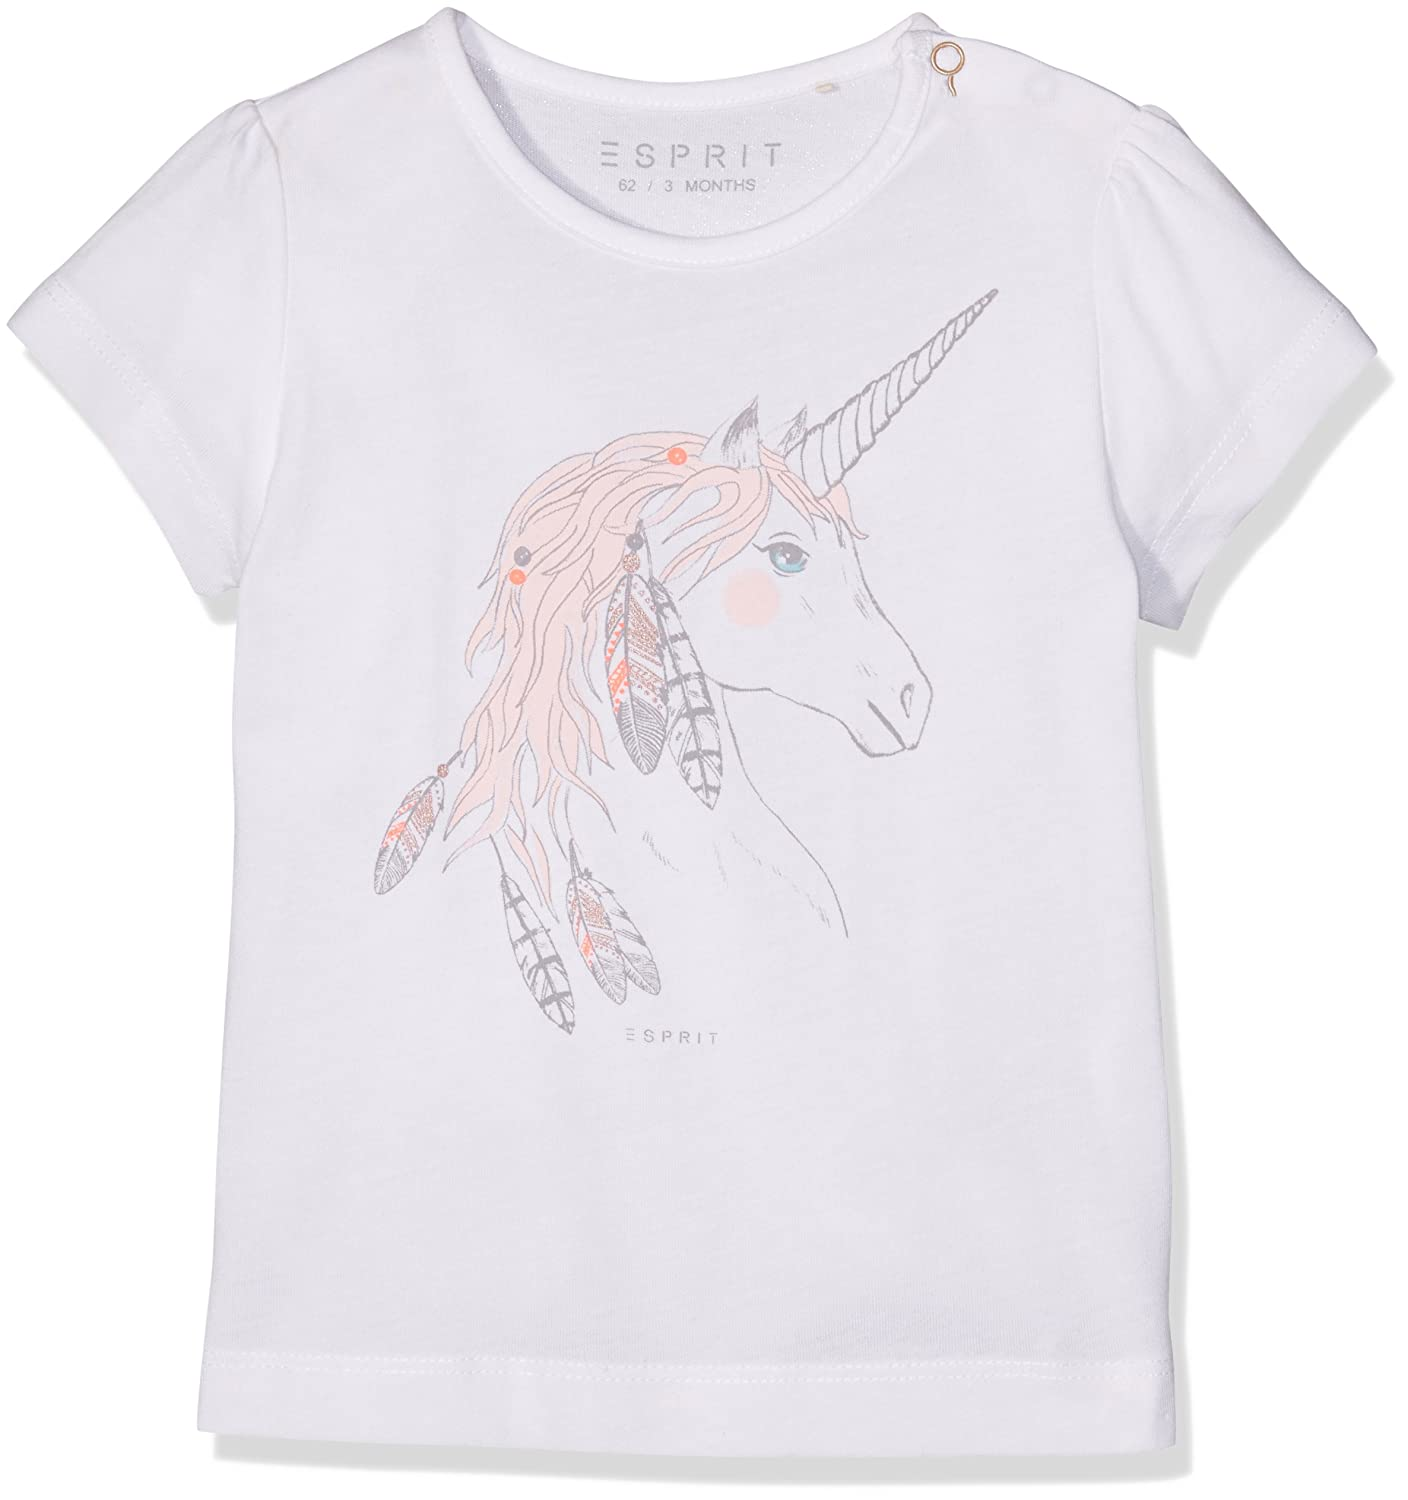 ESPRIT Kids Baby Girls' Filipa T-Shirt White 0-3 Months (Size:62) RJ10031